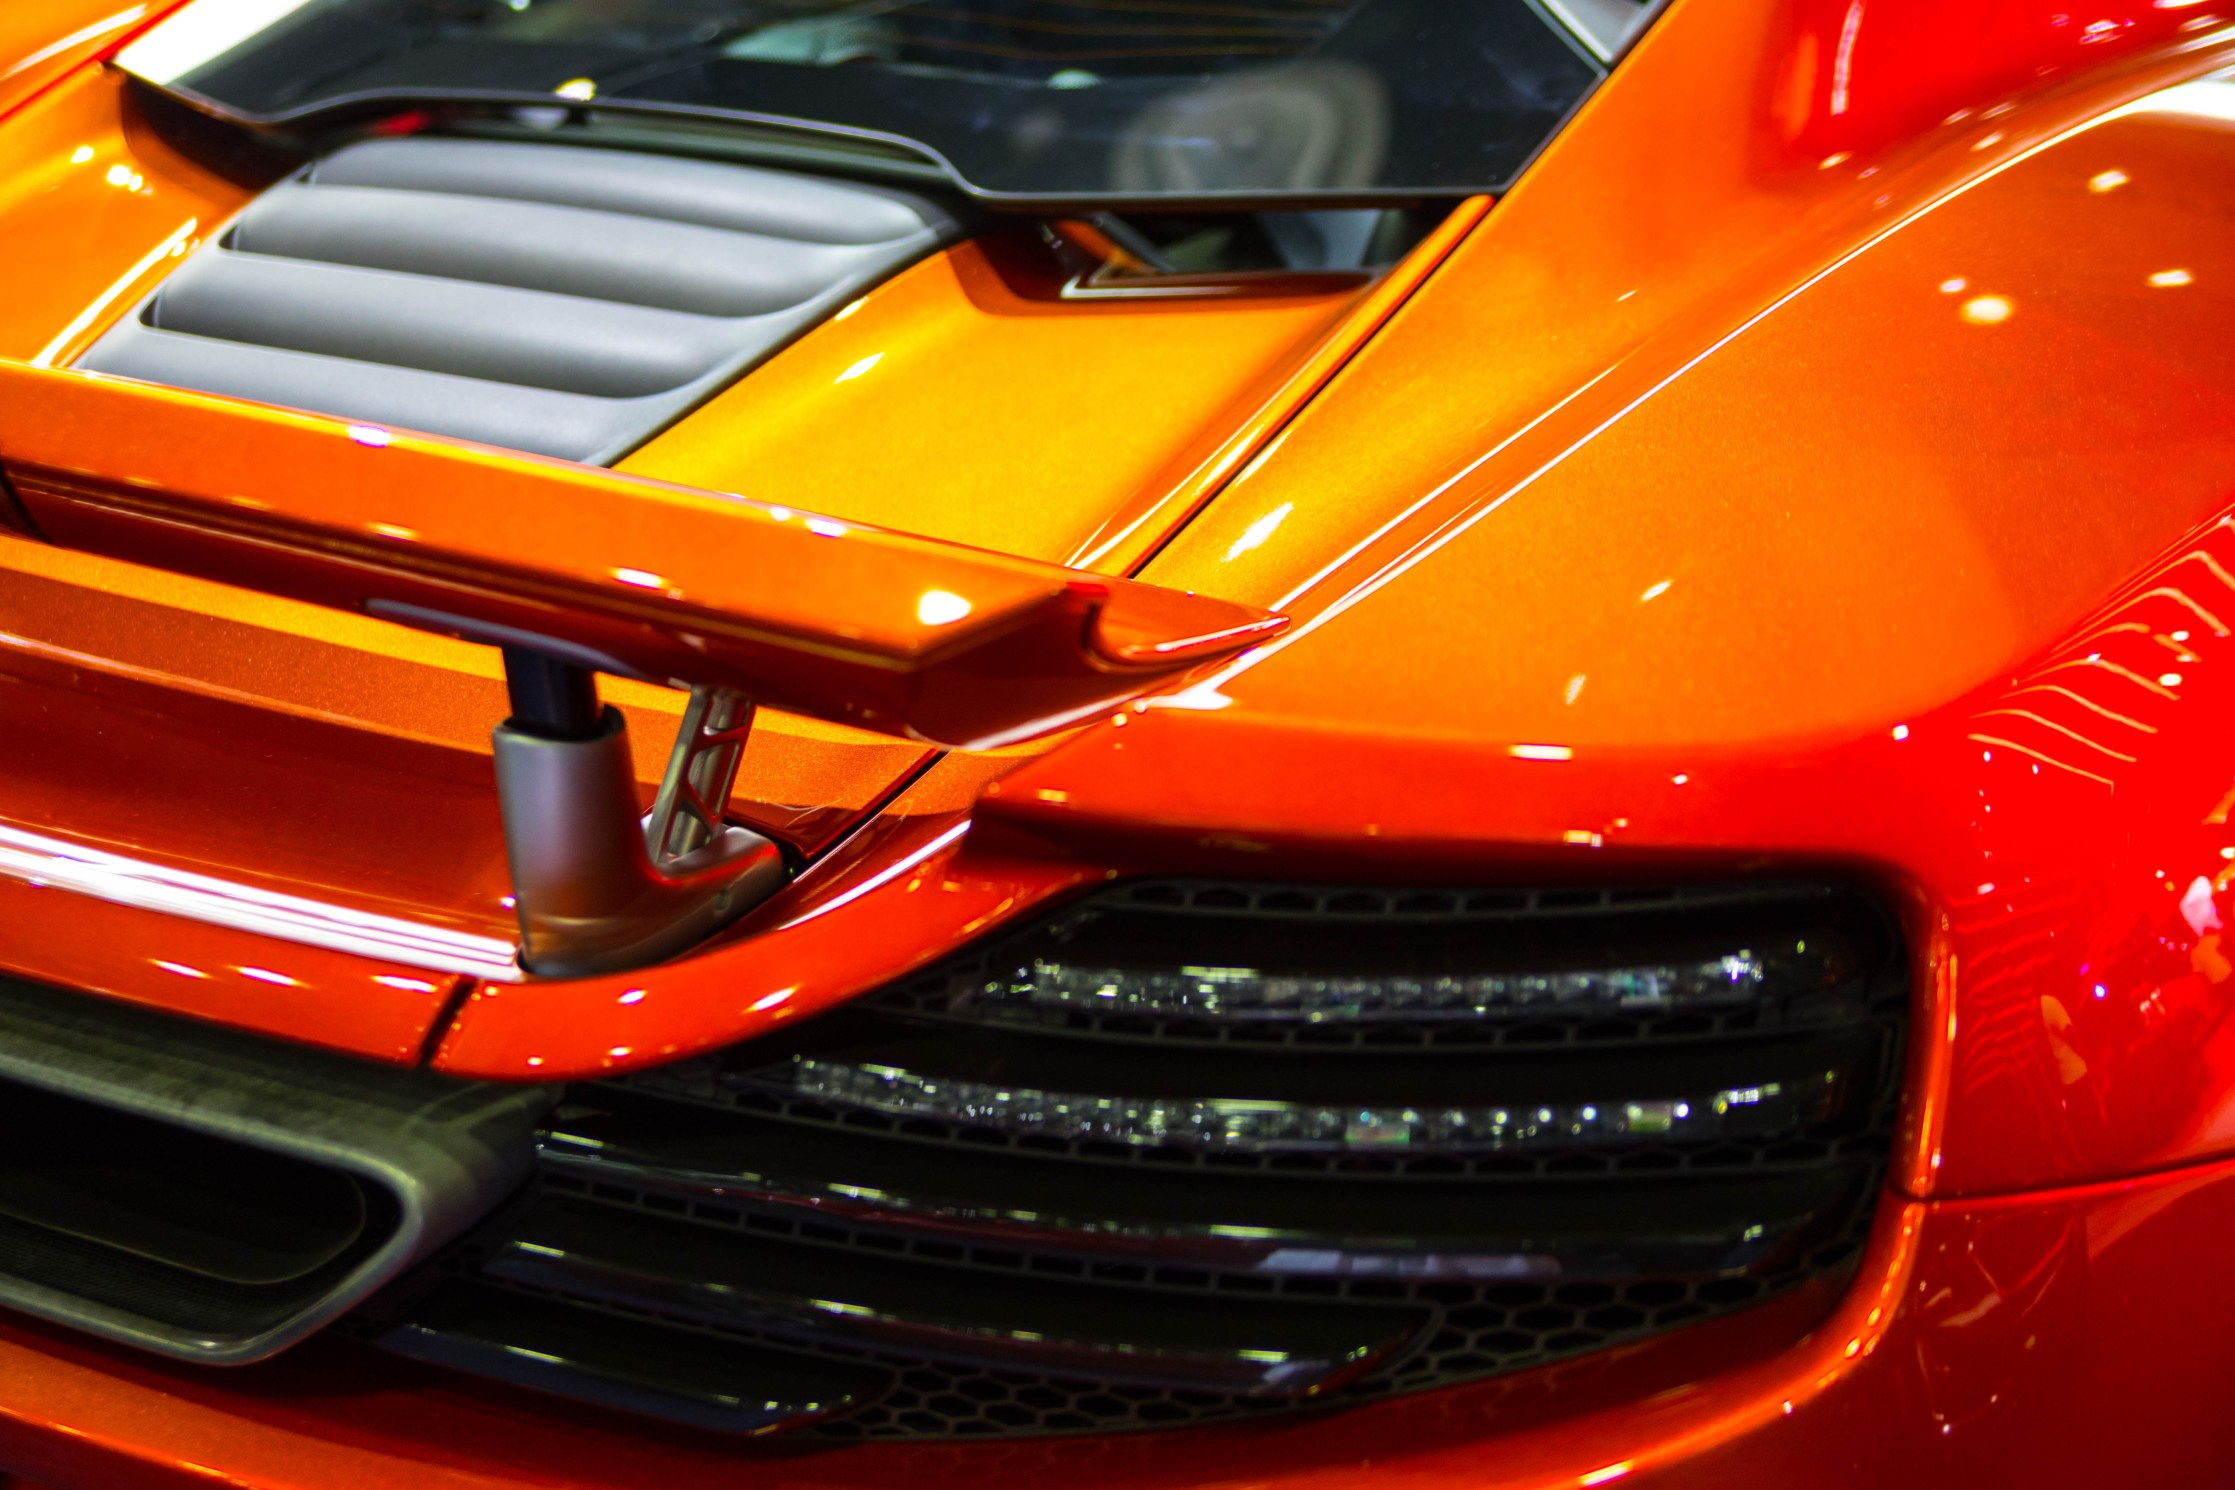 Ombre Orange McLaren Luxury Car at Detroit's North American International Auto Show Press Preview Day NAIAS 2019 by Annie Fairfax